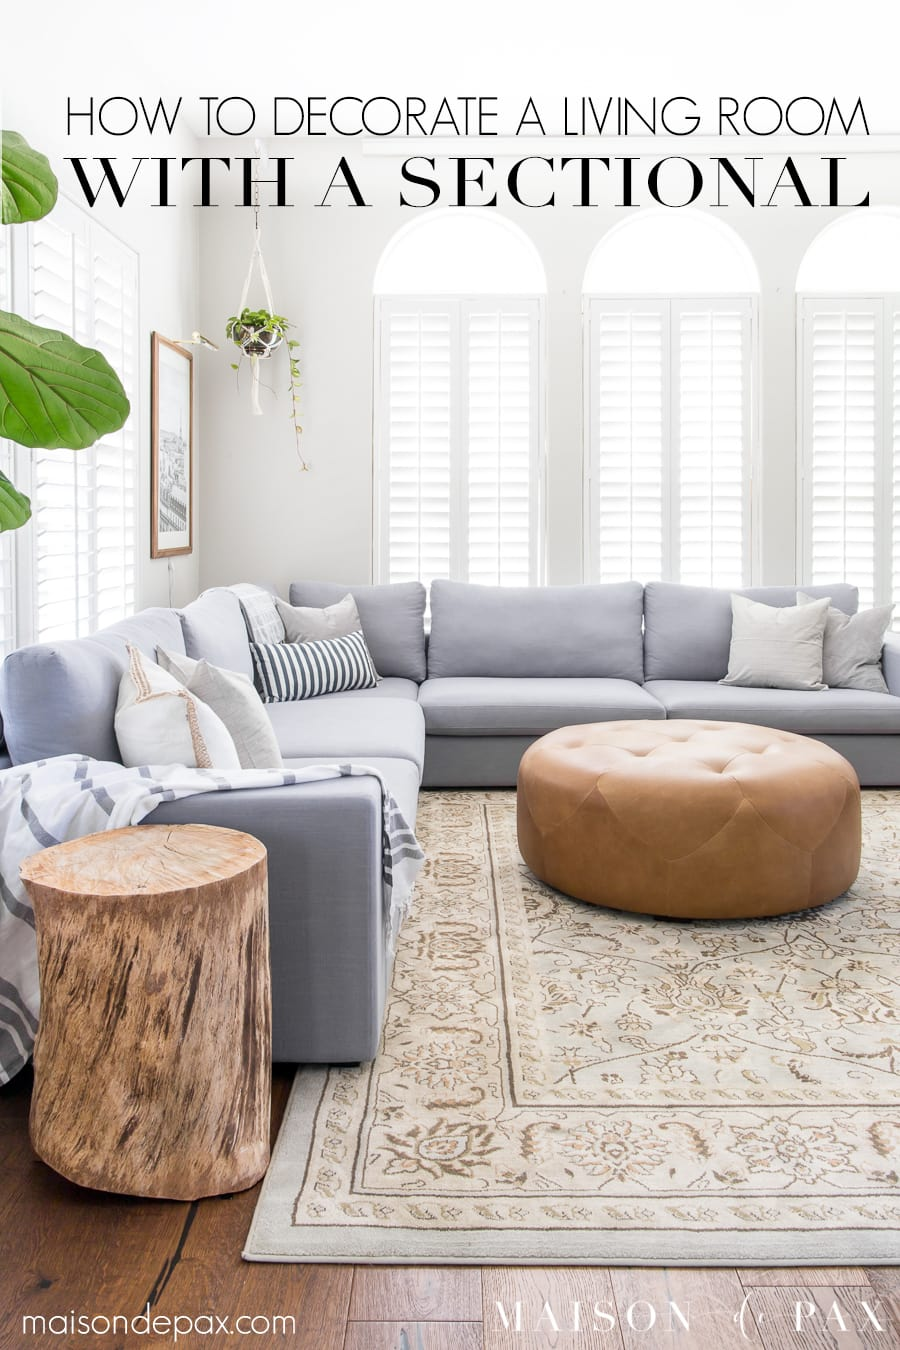 How to decorate a living room with a sectional: 5 tips for creating a light, bright space even with huge furniture! #livingroomdecor #sectionalsofa #graysectional #neutraldecor #livingroomdesign